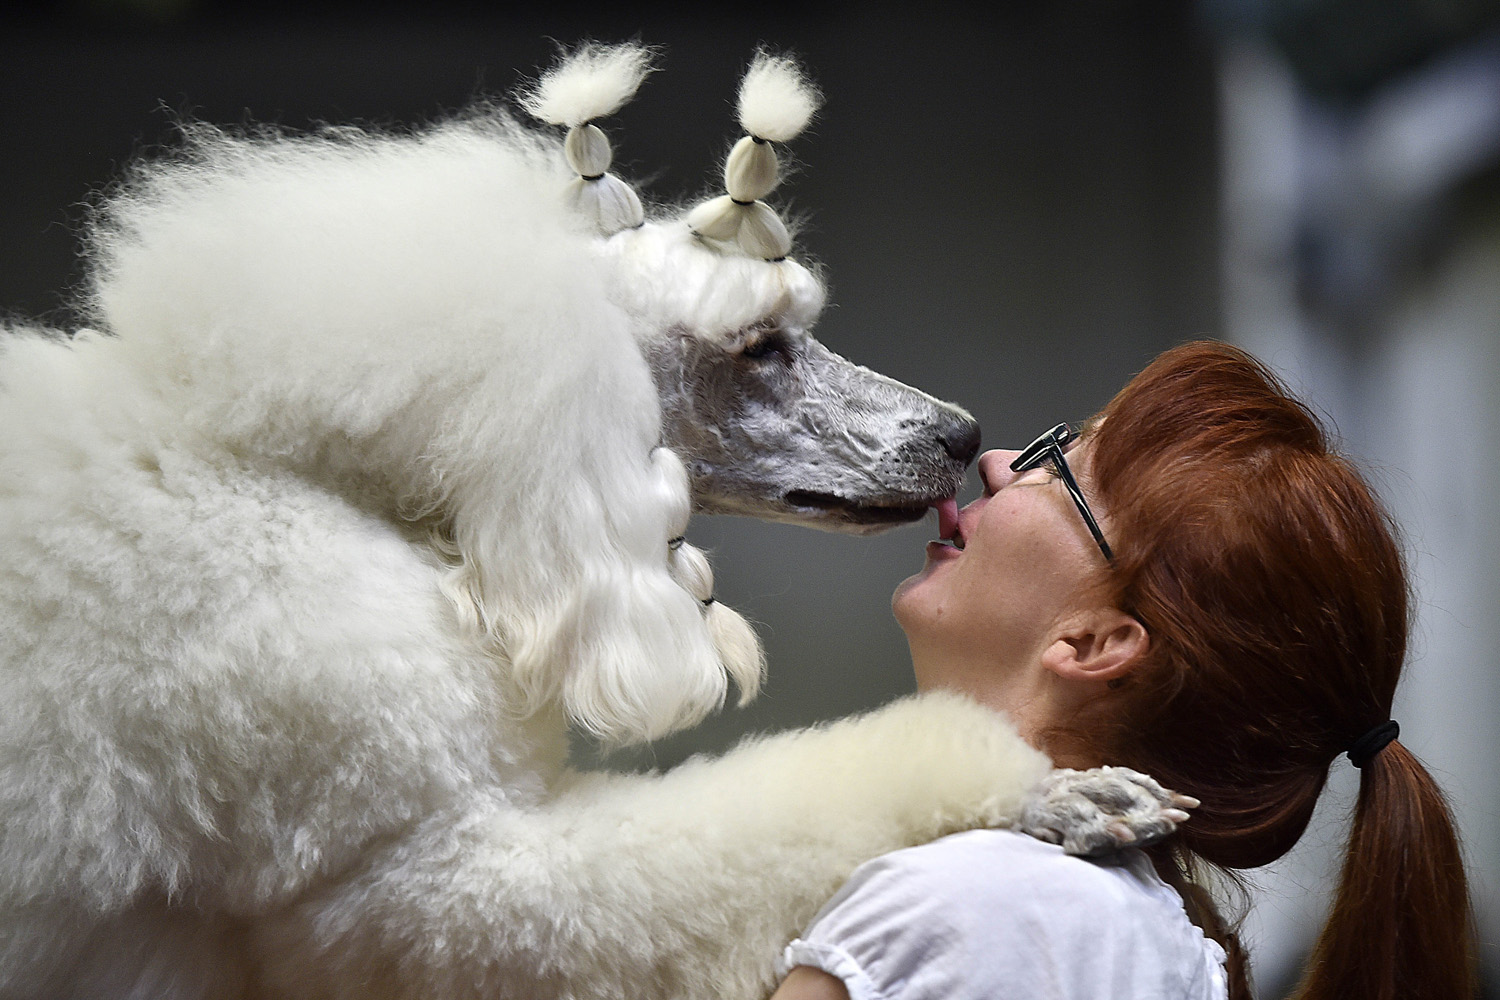 Poodle Farinelli gives back a kiss to its owner Anja Trinks before the contest at the dog show in Dortmund, Germany, on May 9, 2014.